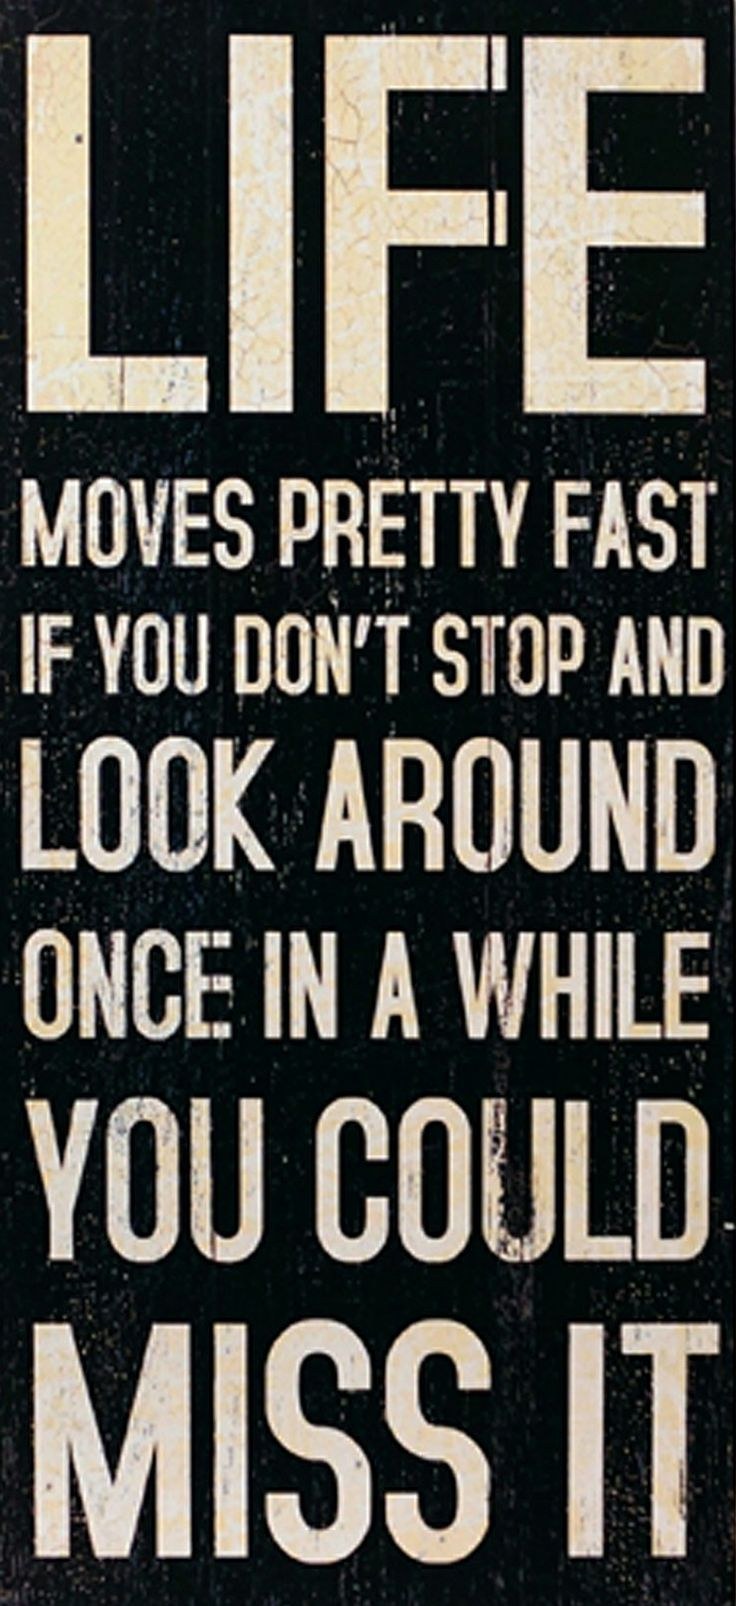 Ferris Bueller Life Moves Pretty Fast Quote Ferris Bueller  Wall Art  Quote Me This  Pinterest  Day Off